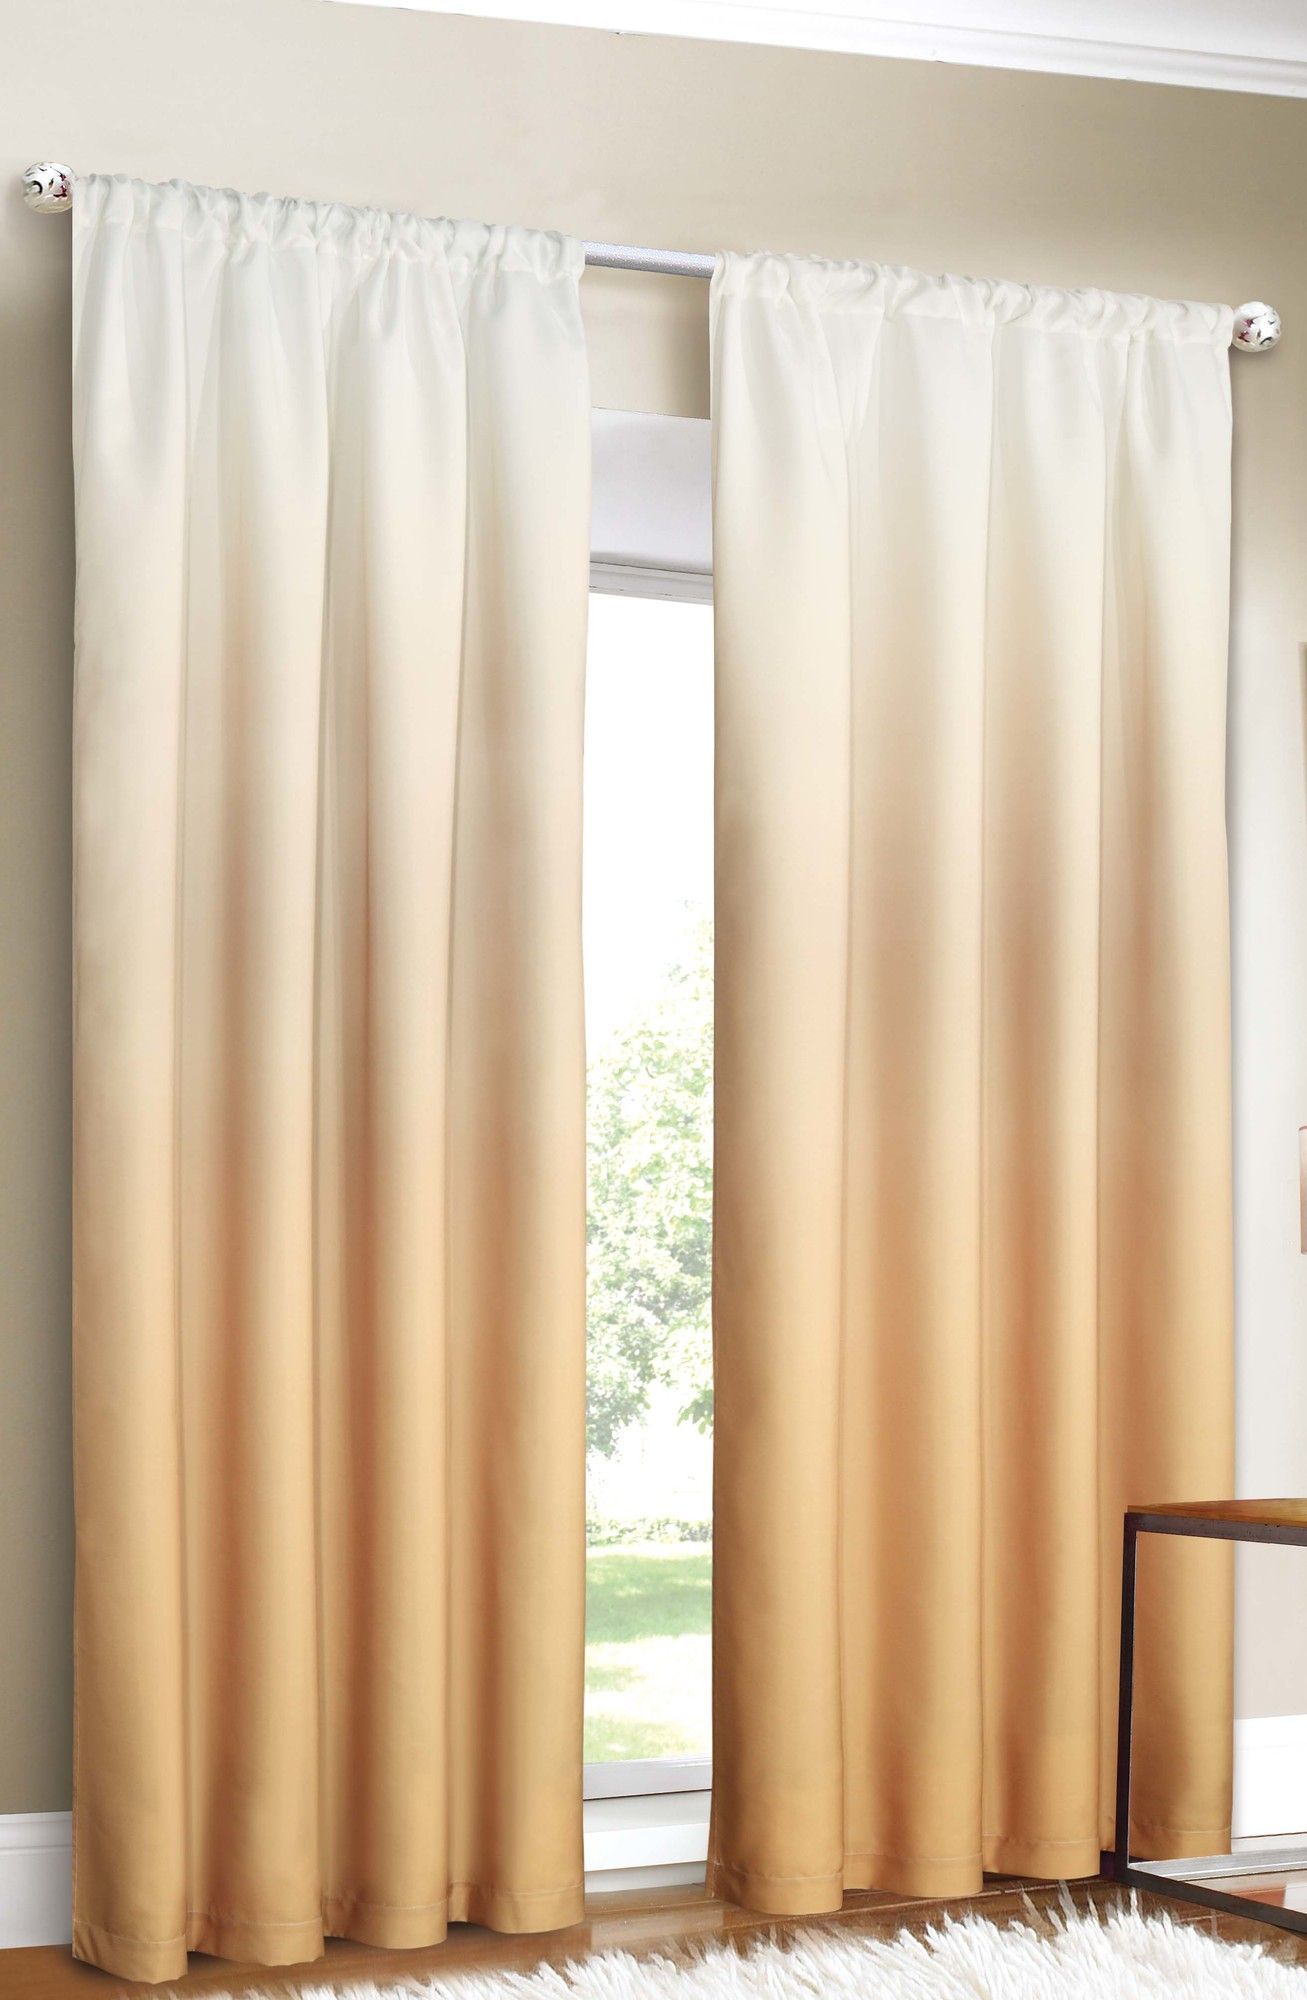 Shades curtain panels products